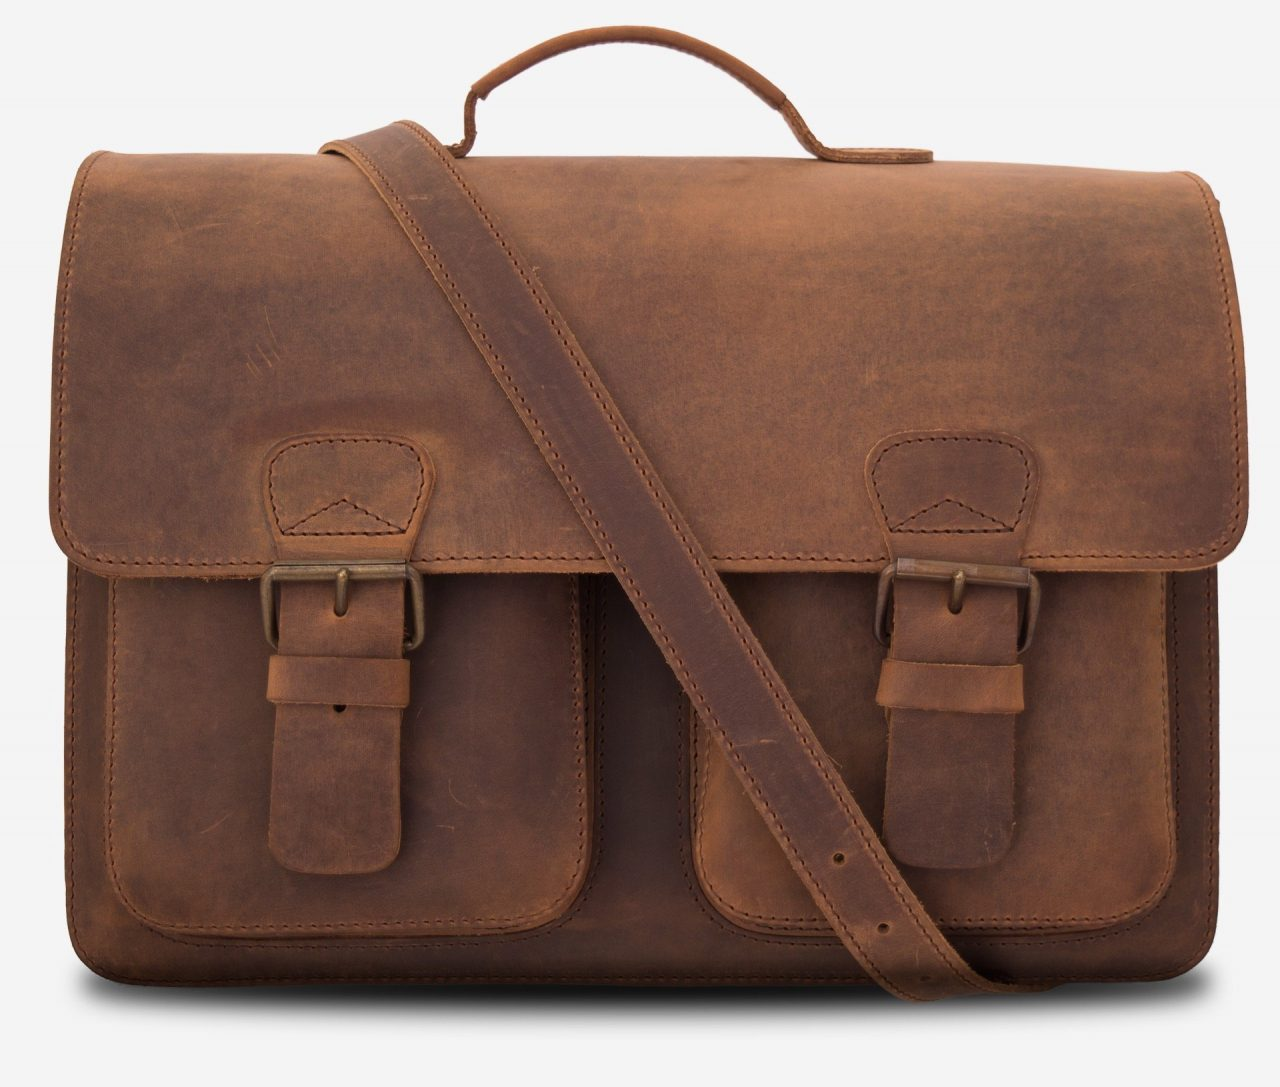 Grand cartable de professeur en cuir vintage marron.